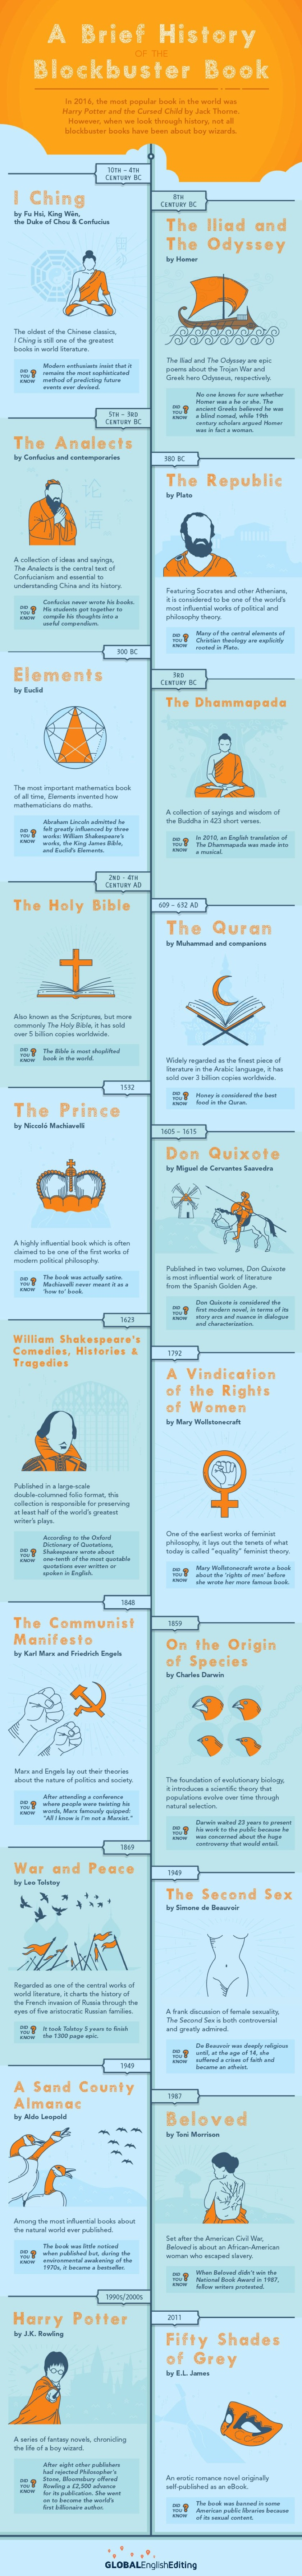 A history of the blockbuster book #infographic